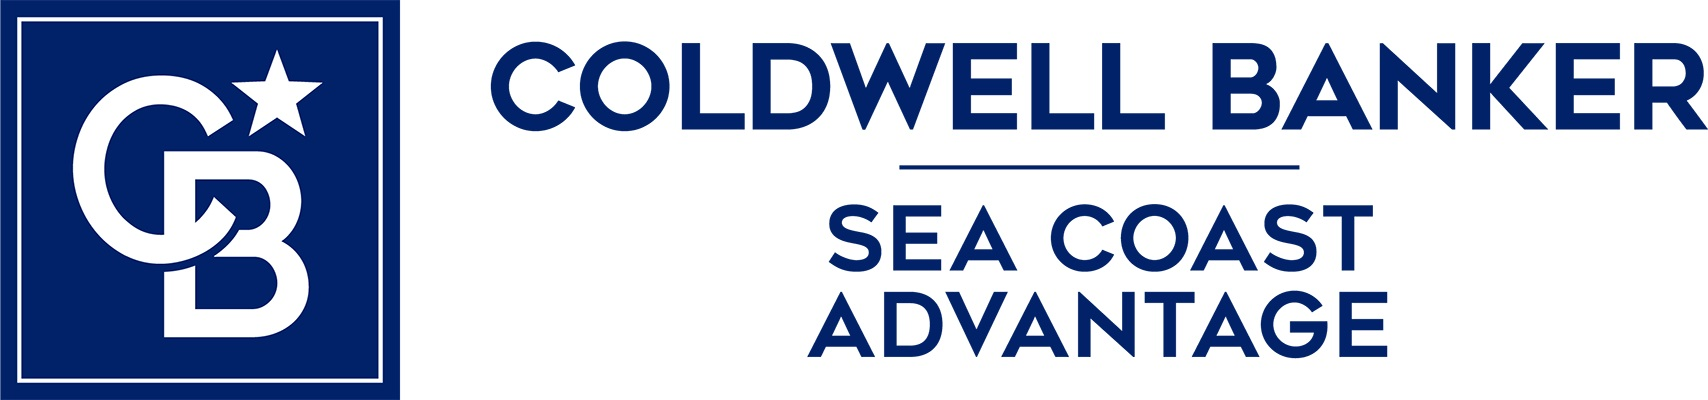 Vicki McHenry - Coldwell Banker Sea Coast Advantage Realty